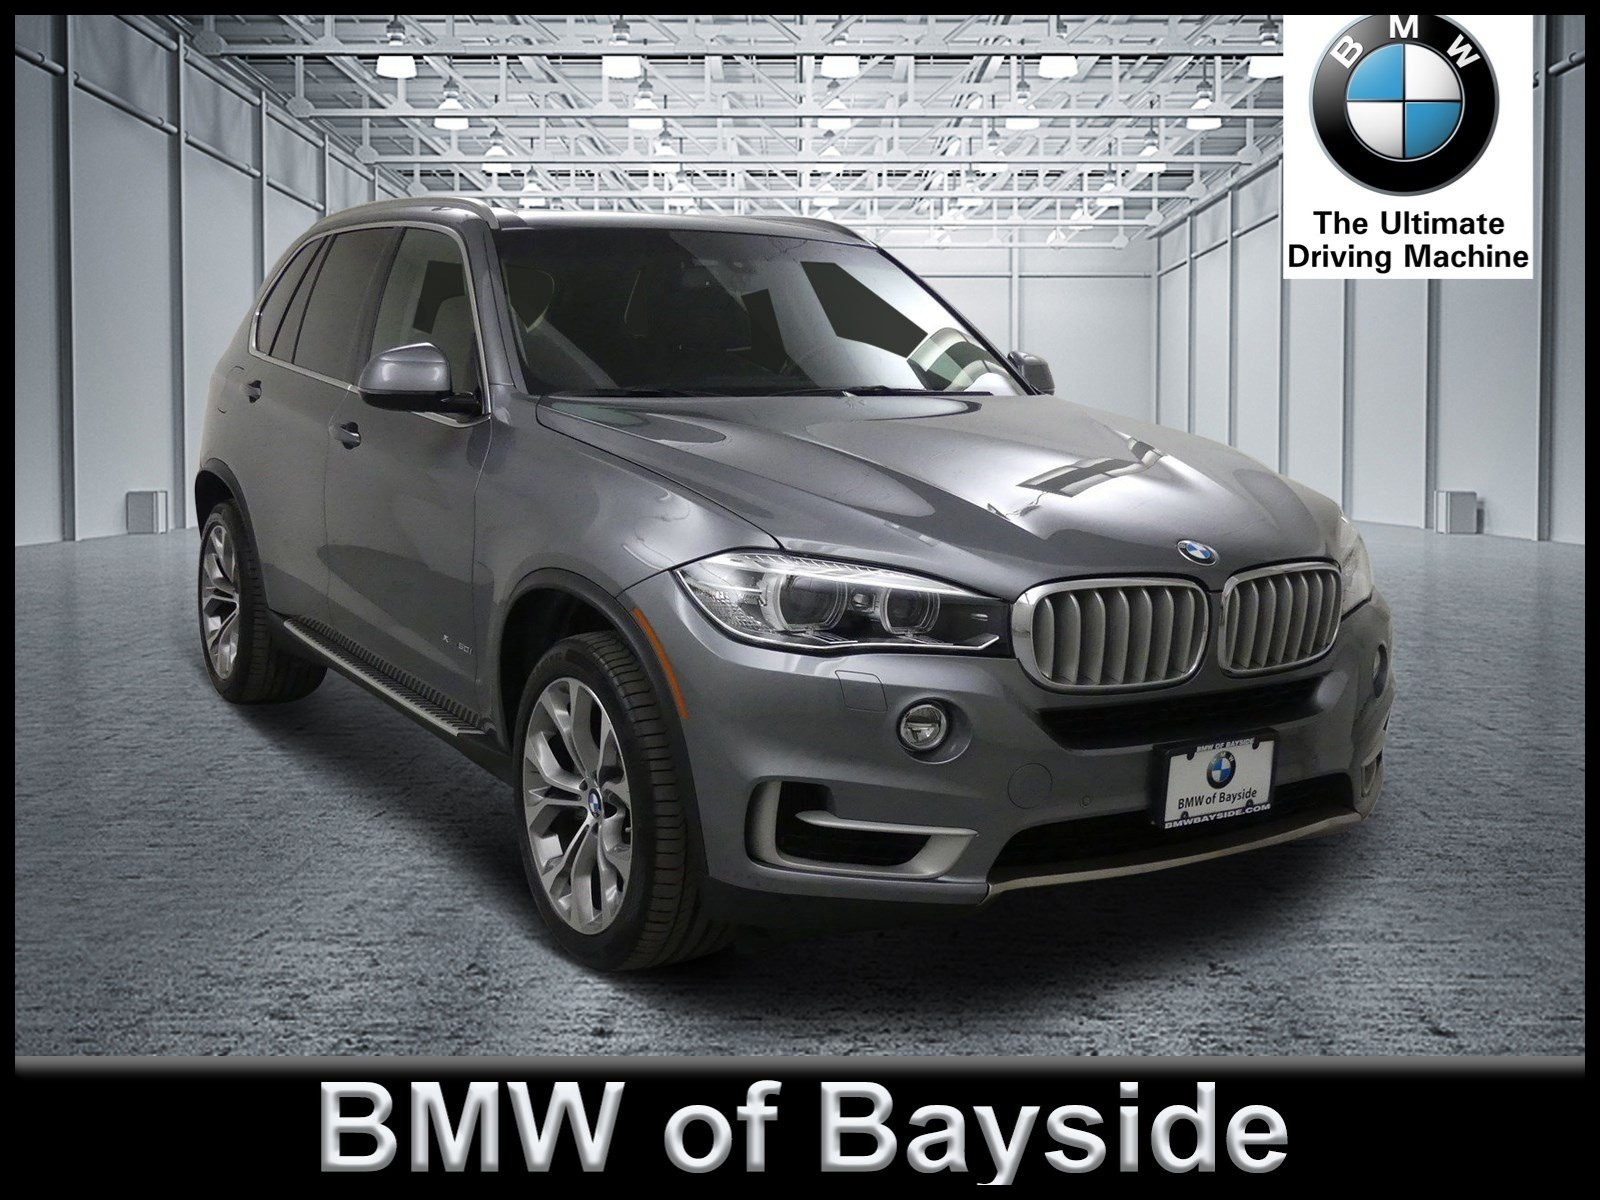 Bmw Roadside assistance Phone Number Bmw Roadside assistance Cost Certified Pre Owned 2015 Bmw X5